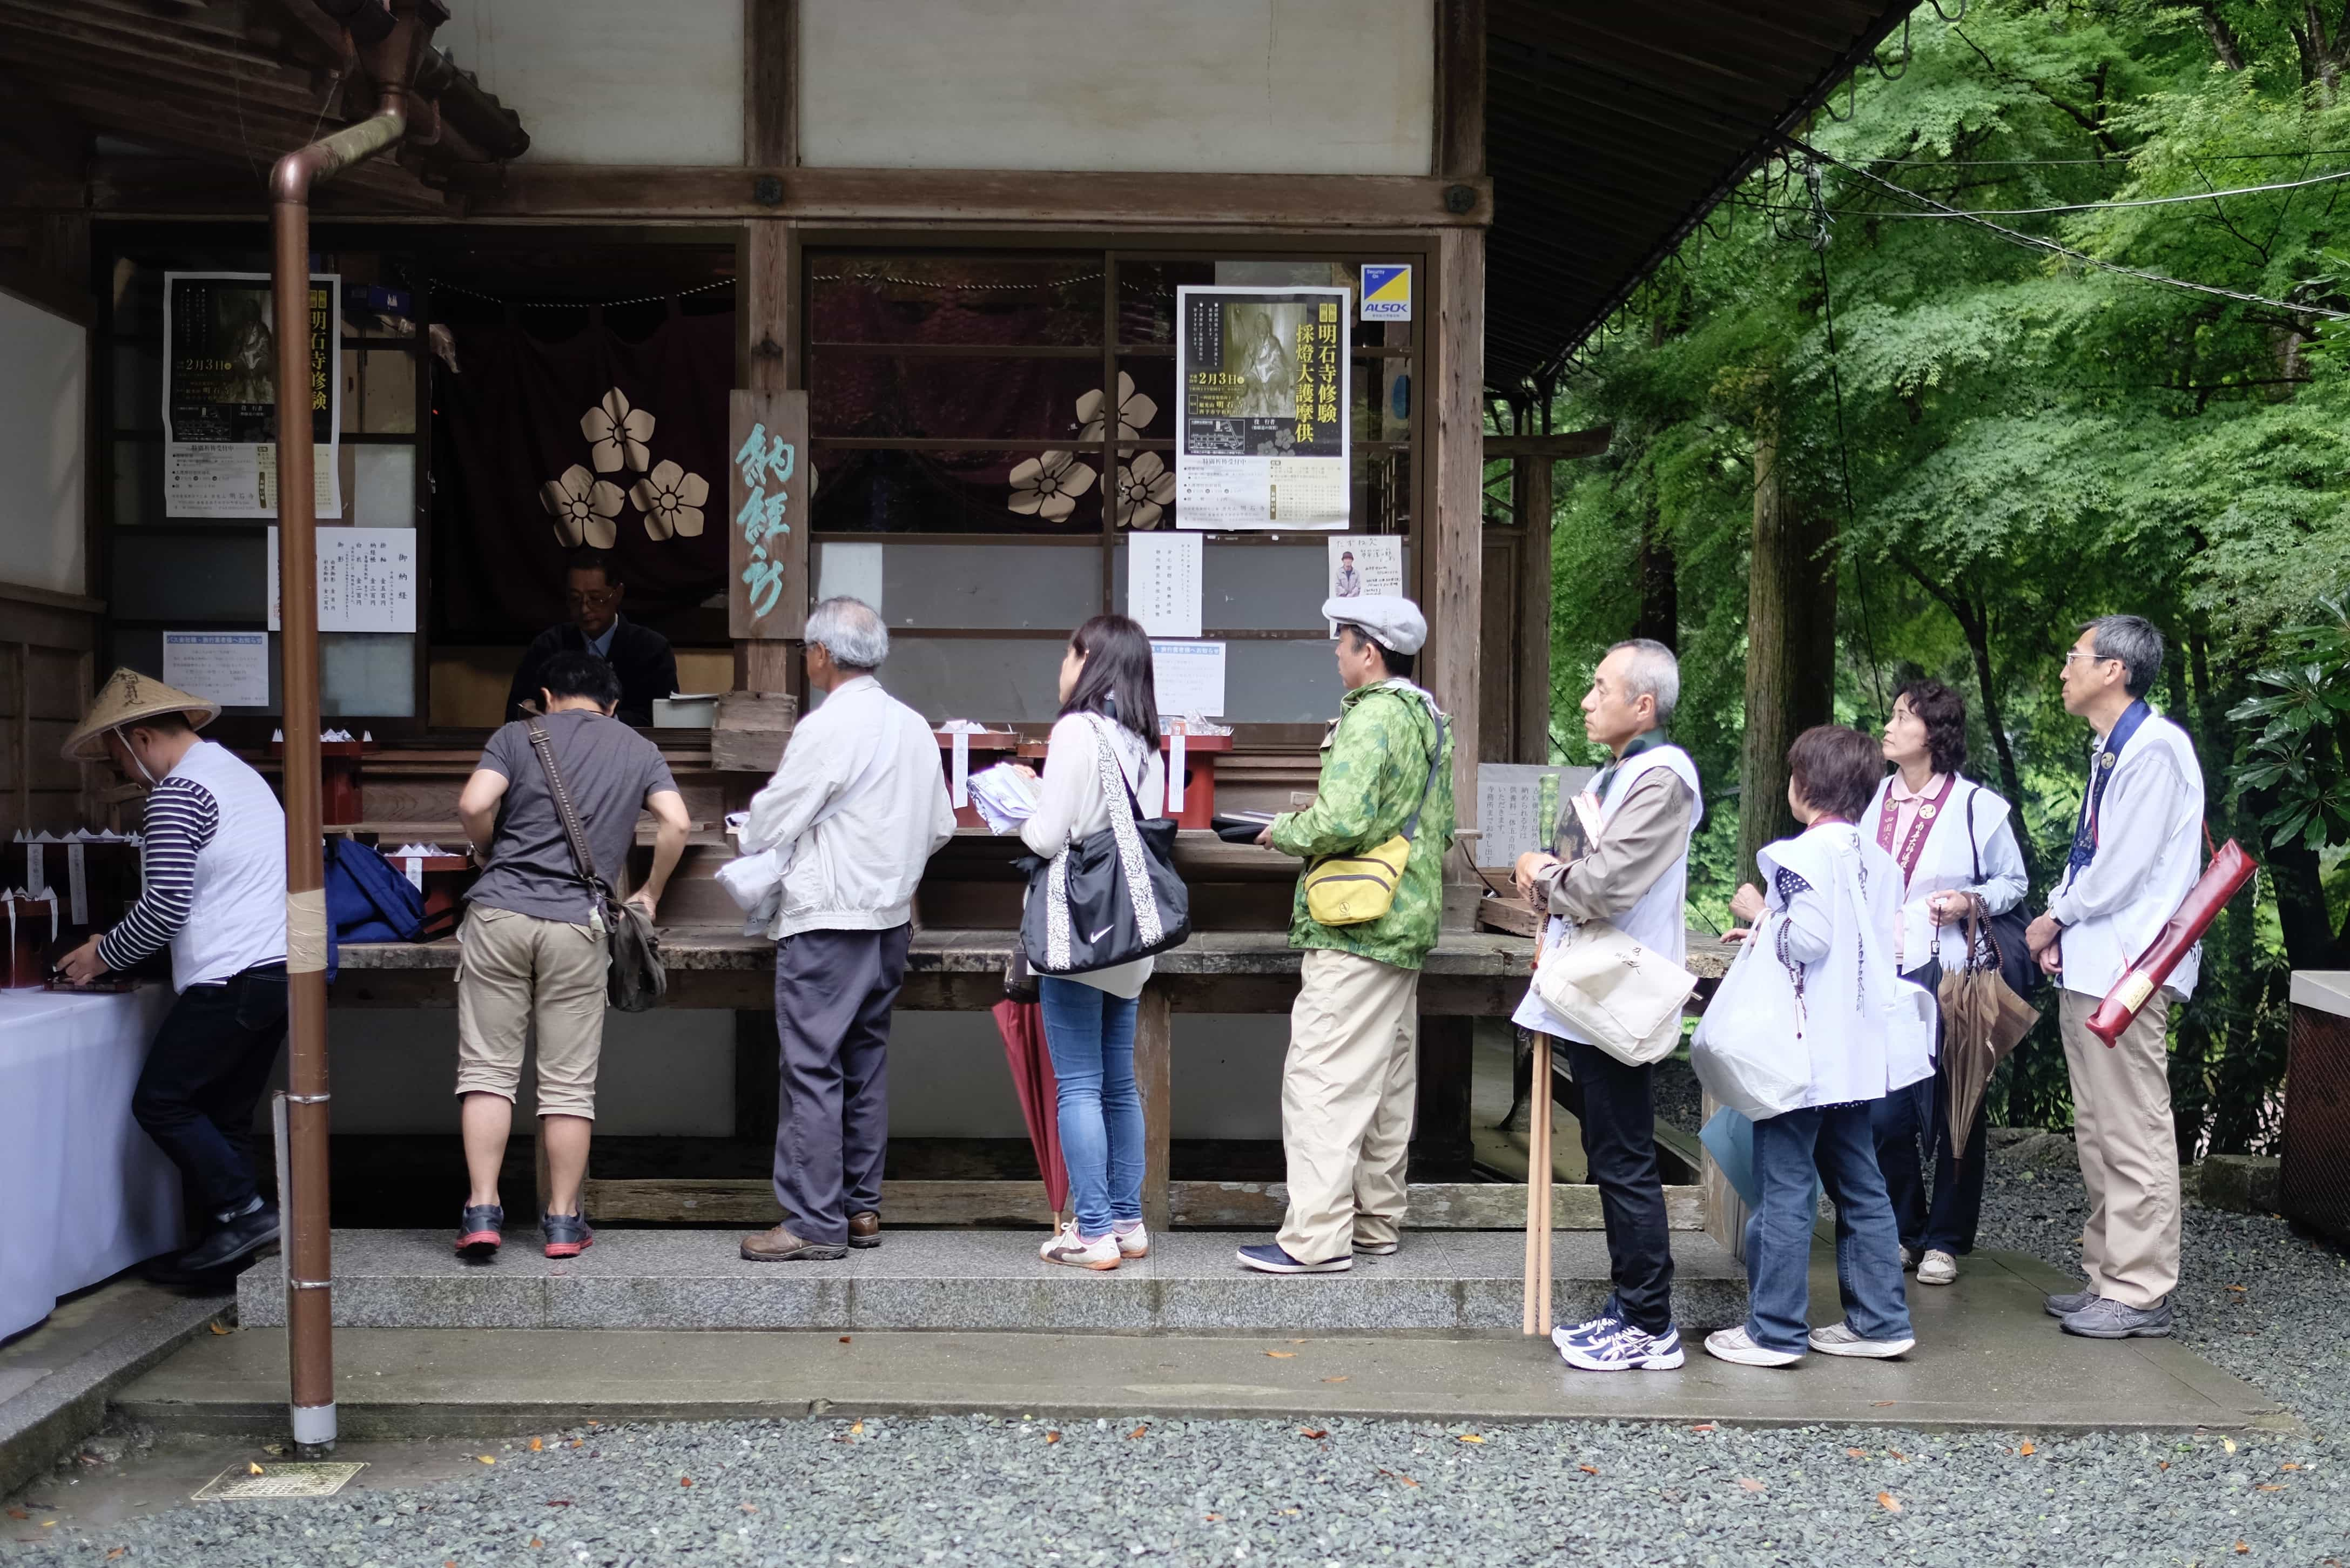 Pilgrims queueing at Meiseki-ji